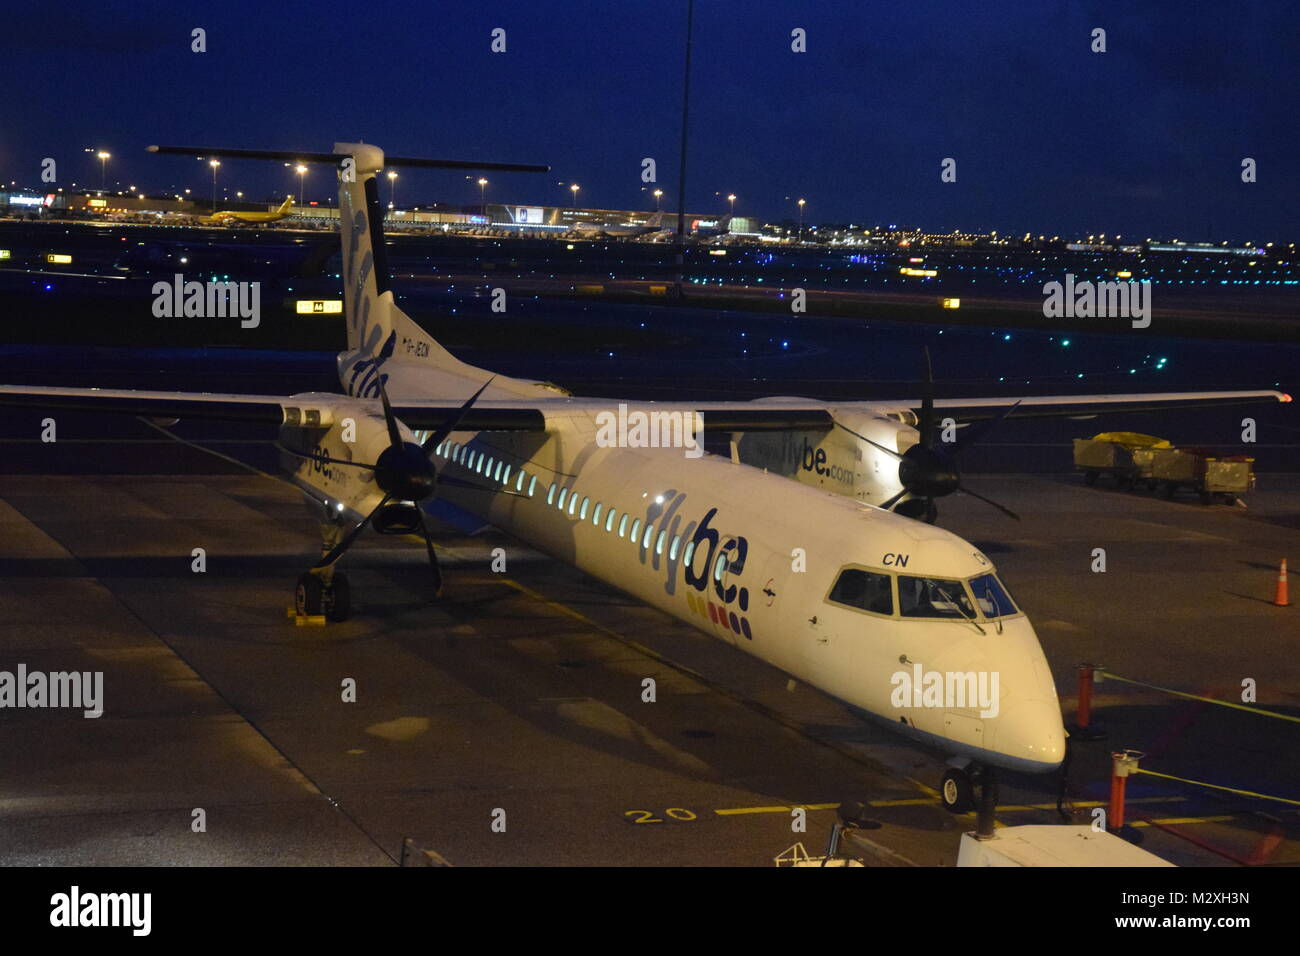 FLYBE BOMBARDIER DASH 8 Q-400 AT SCHIPOL AIRPORT, AMSTERDAM, HOLLAND. - Stock Image